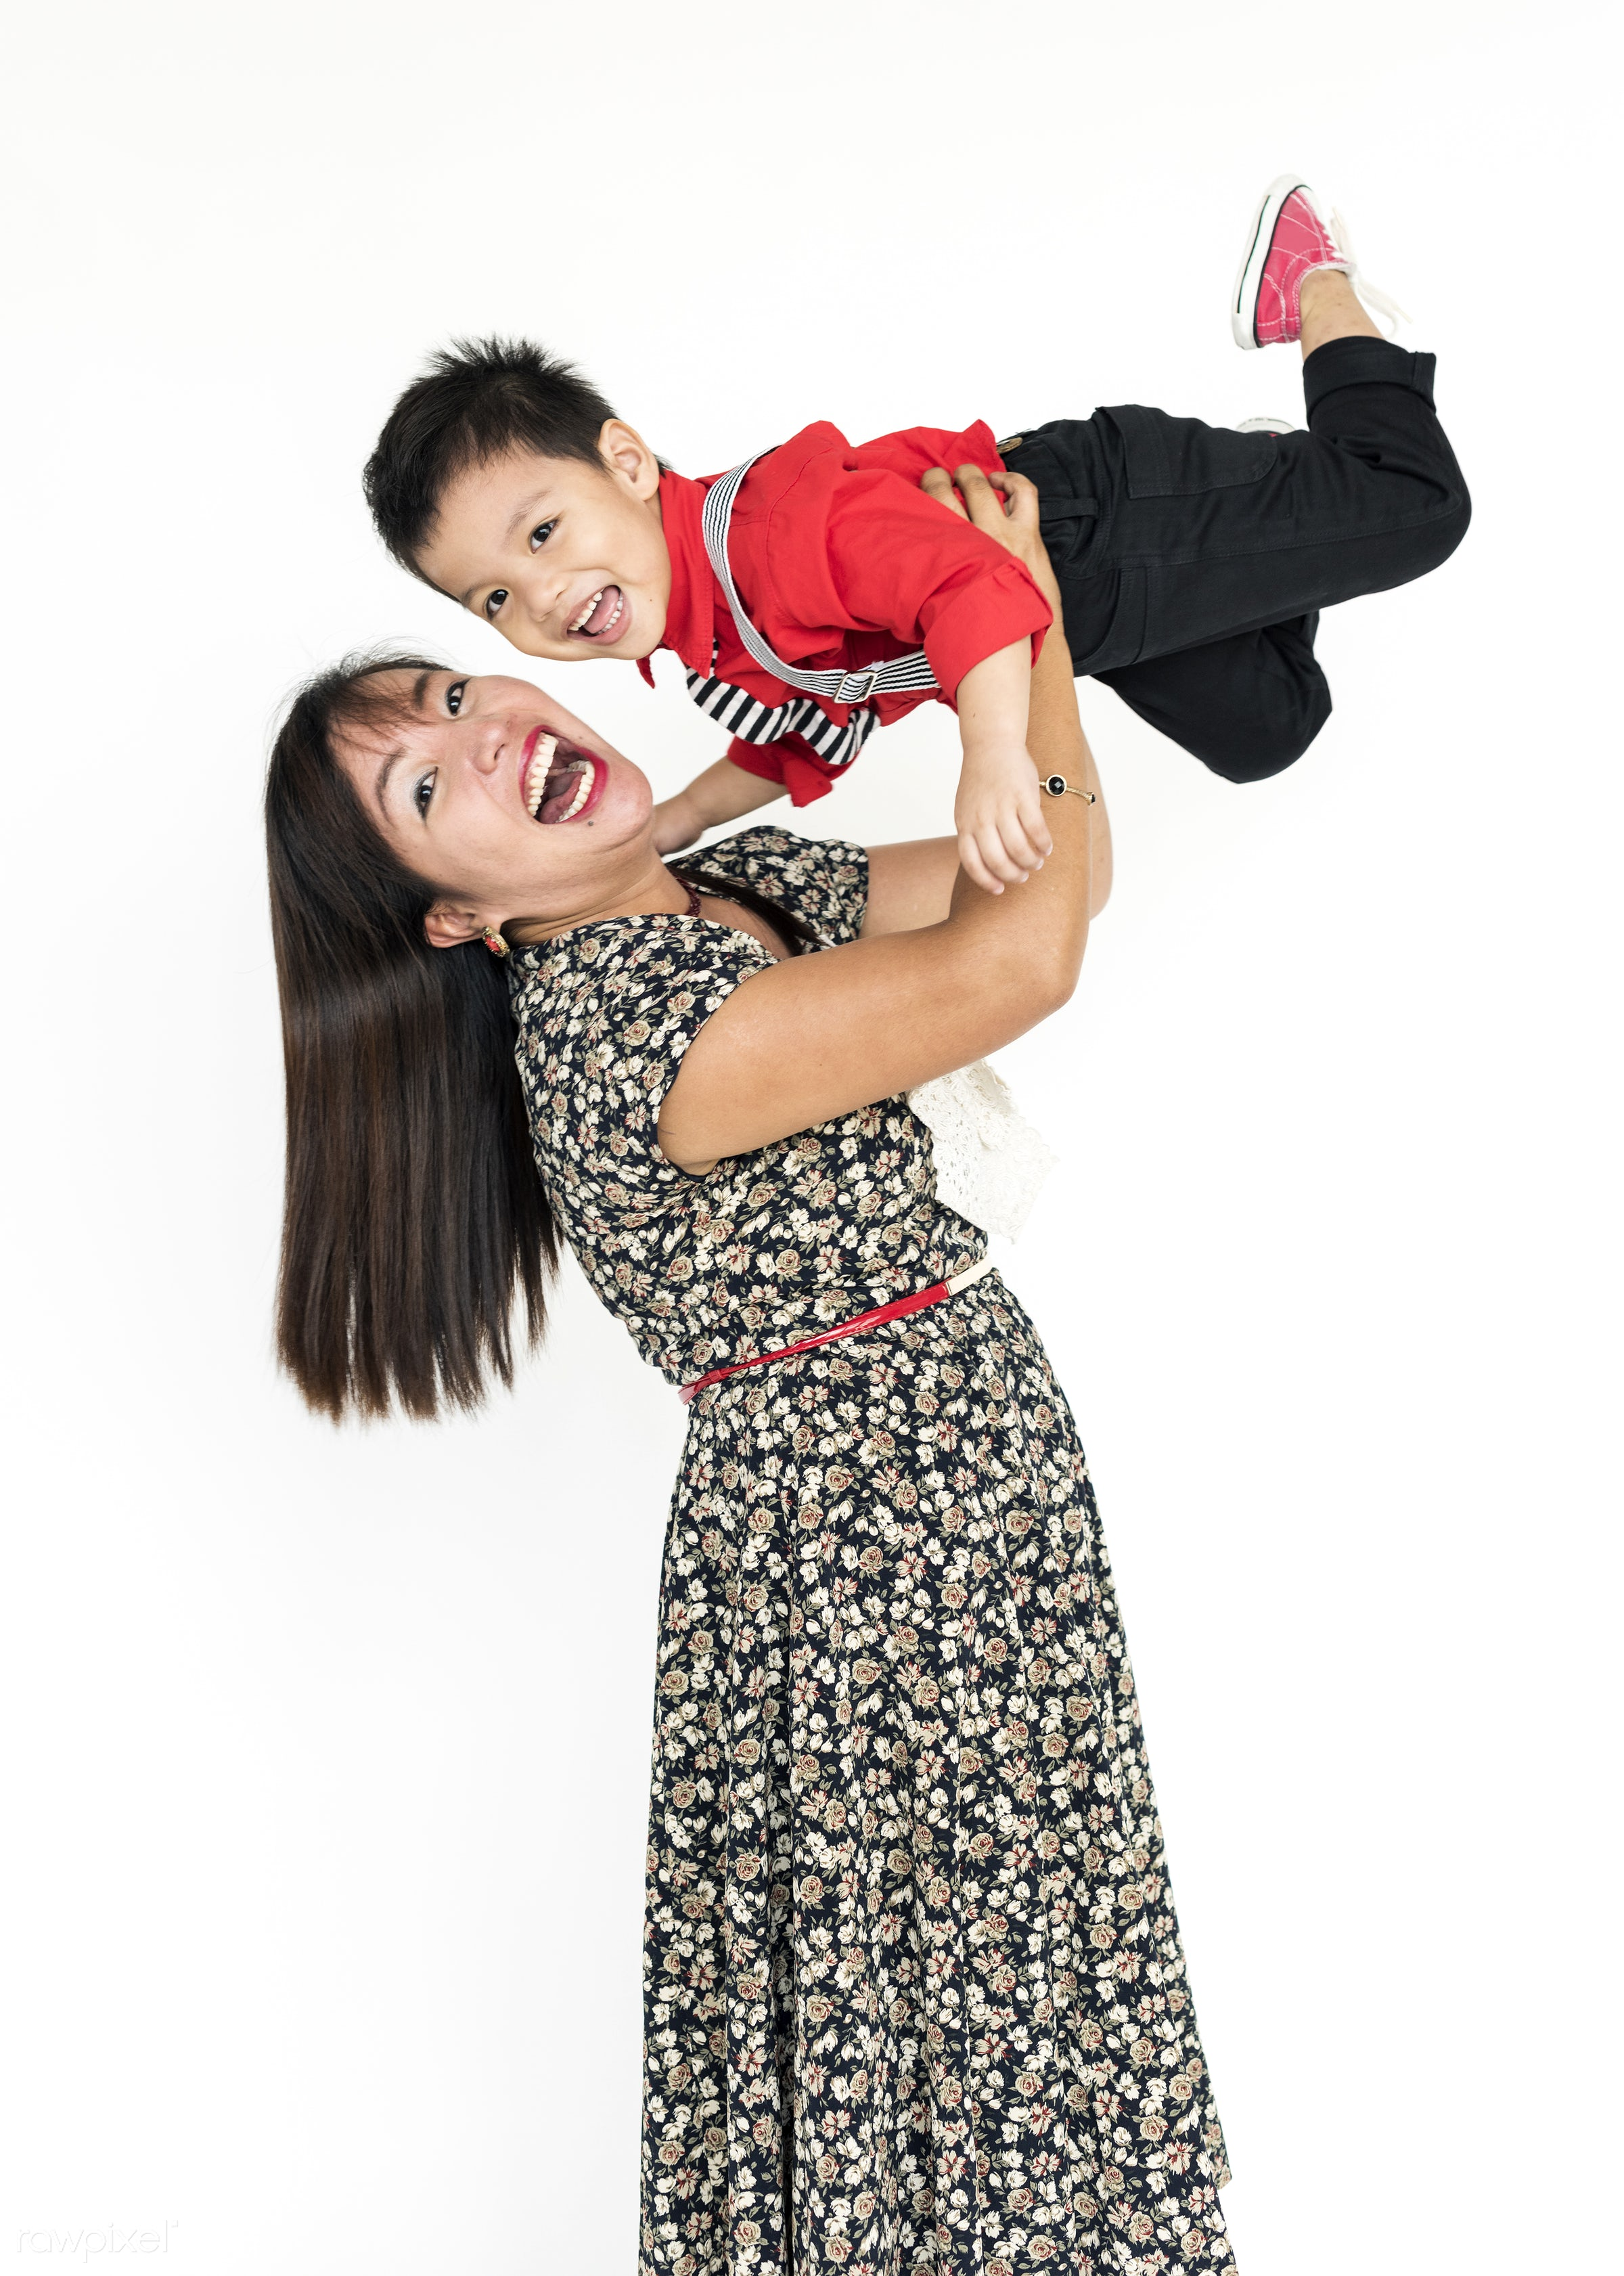 studio, expression, person, people, asian, kid, love, woman, family, childhood, smile, cheerful, smiling, isolated, white,...